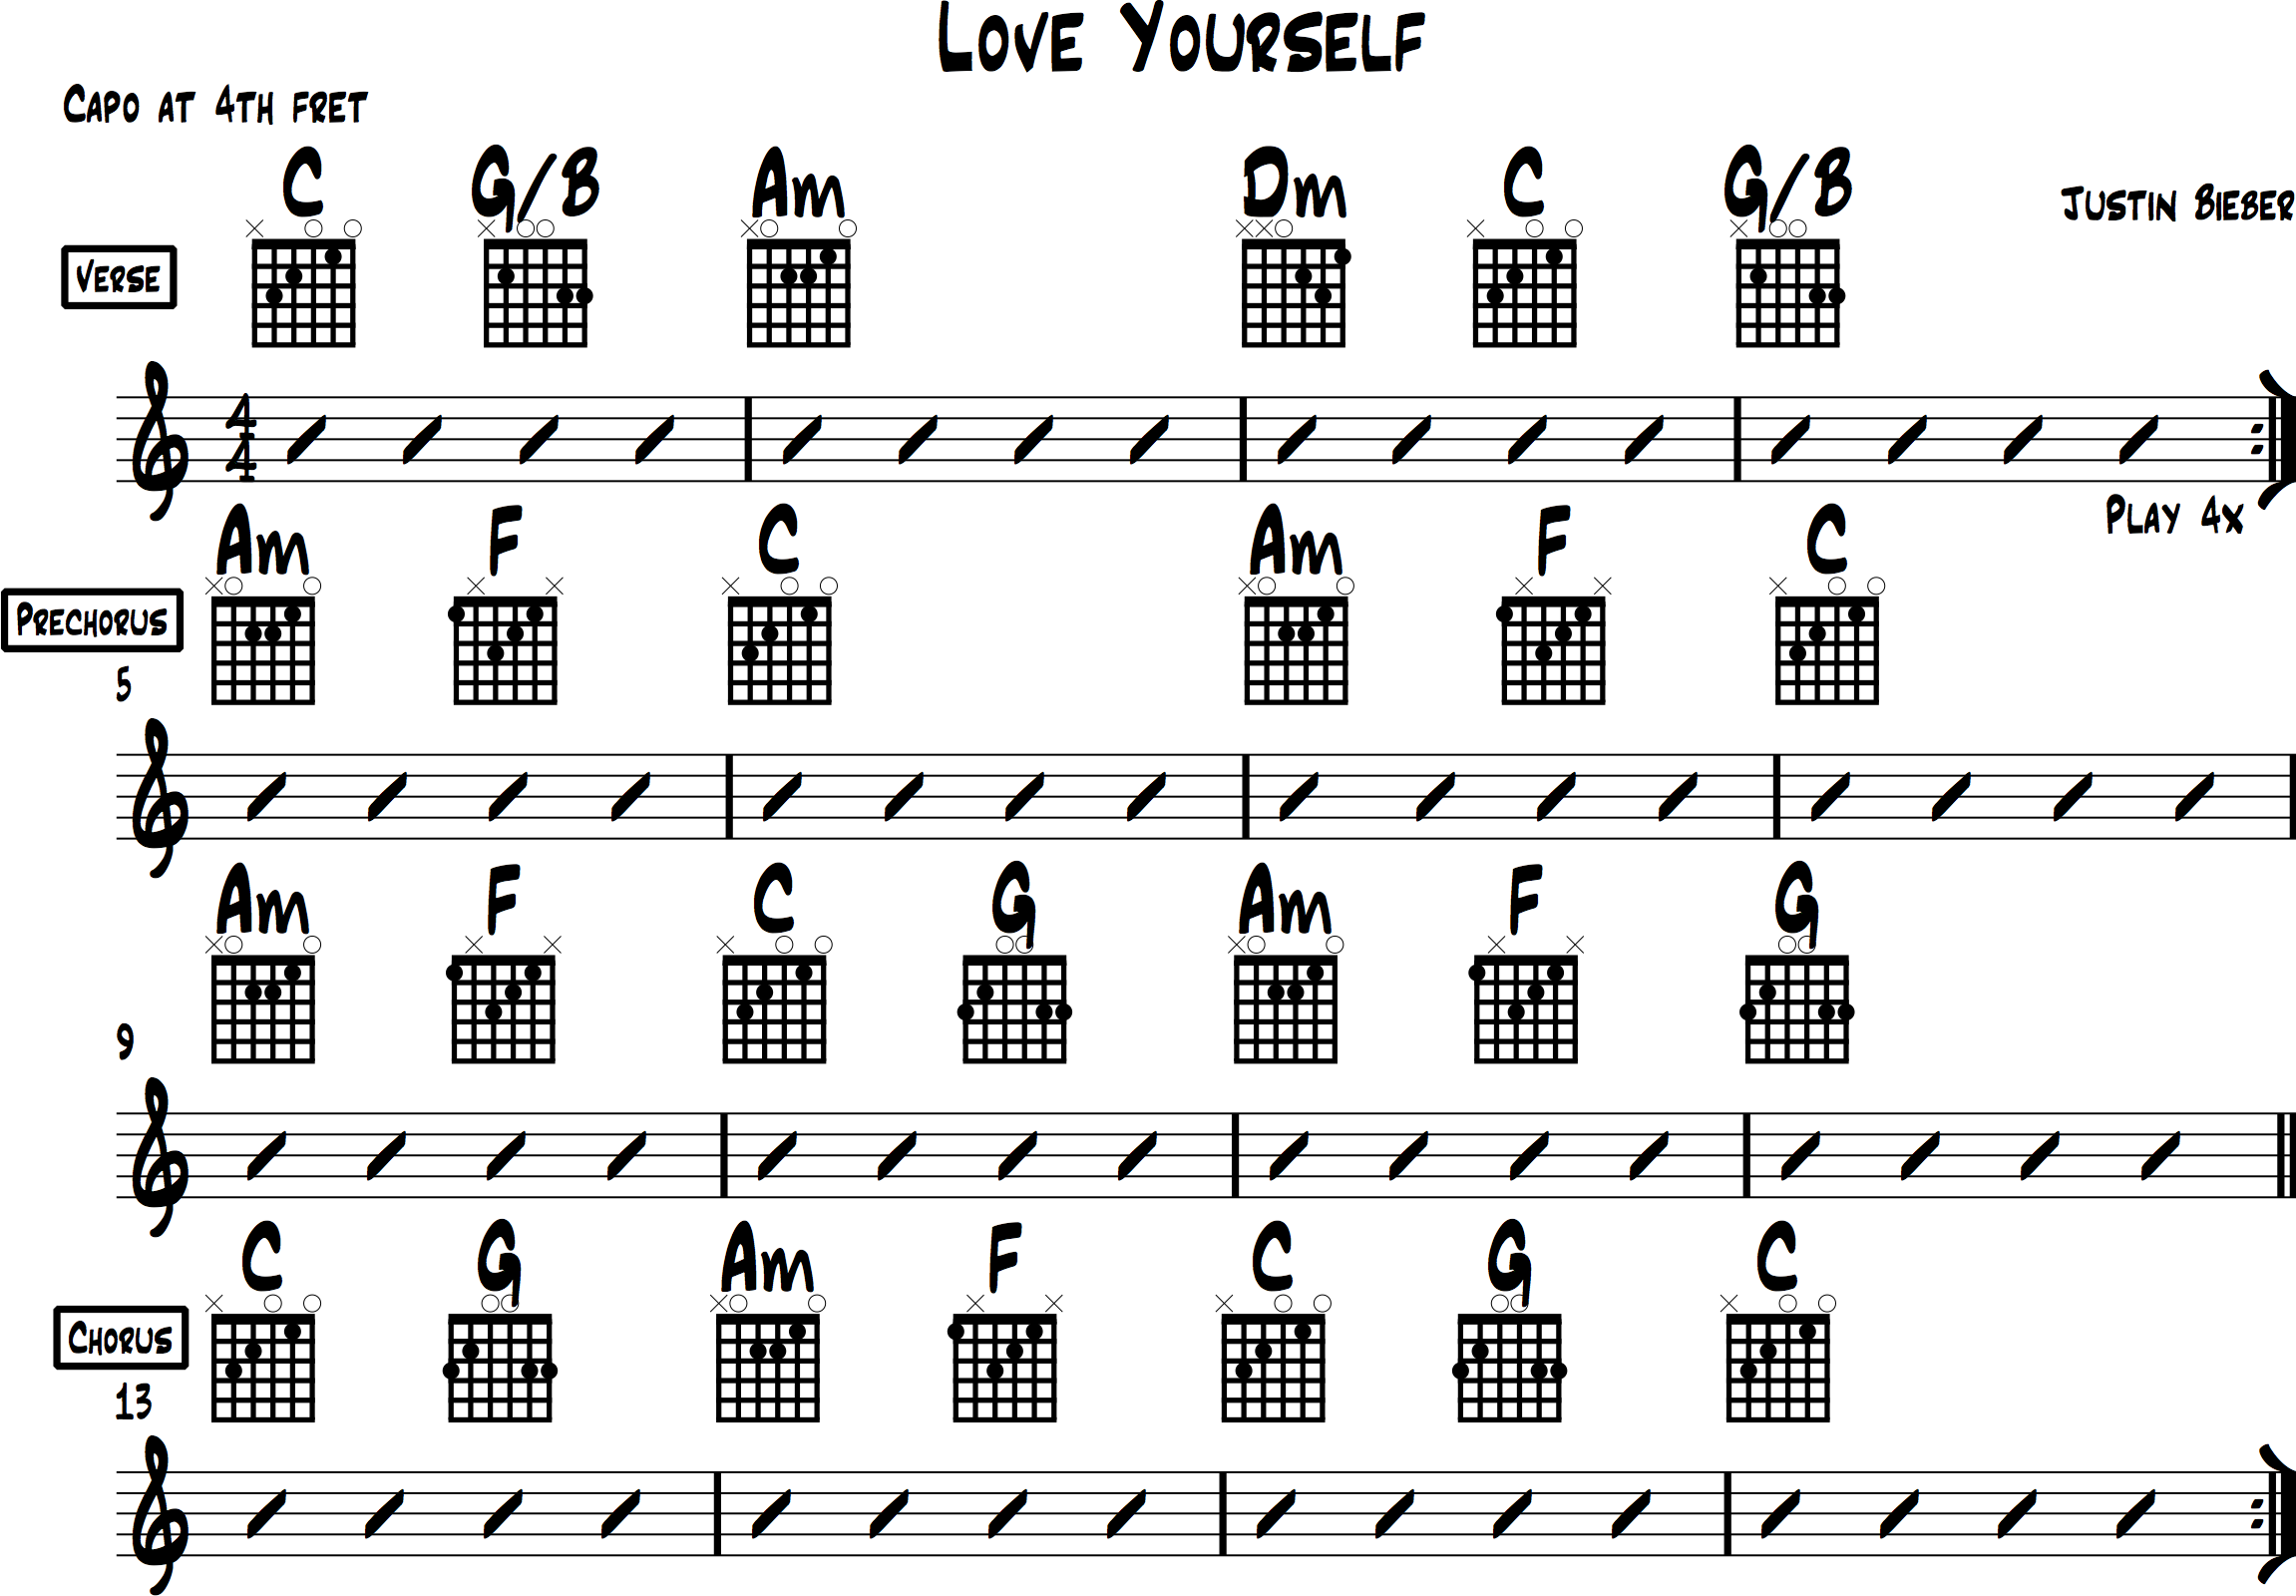 Love Yourself chord chart for guitar